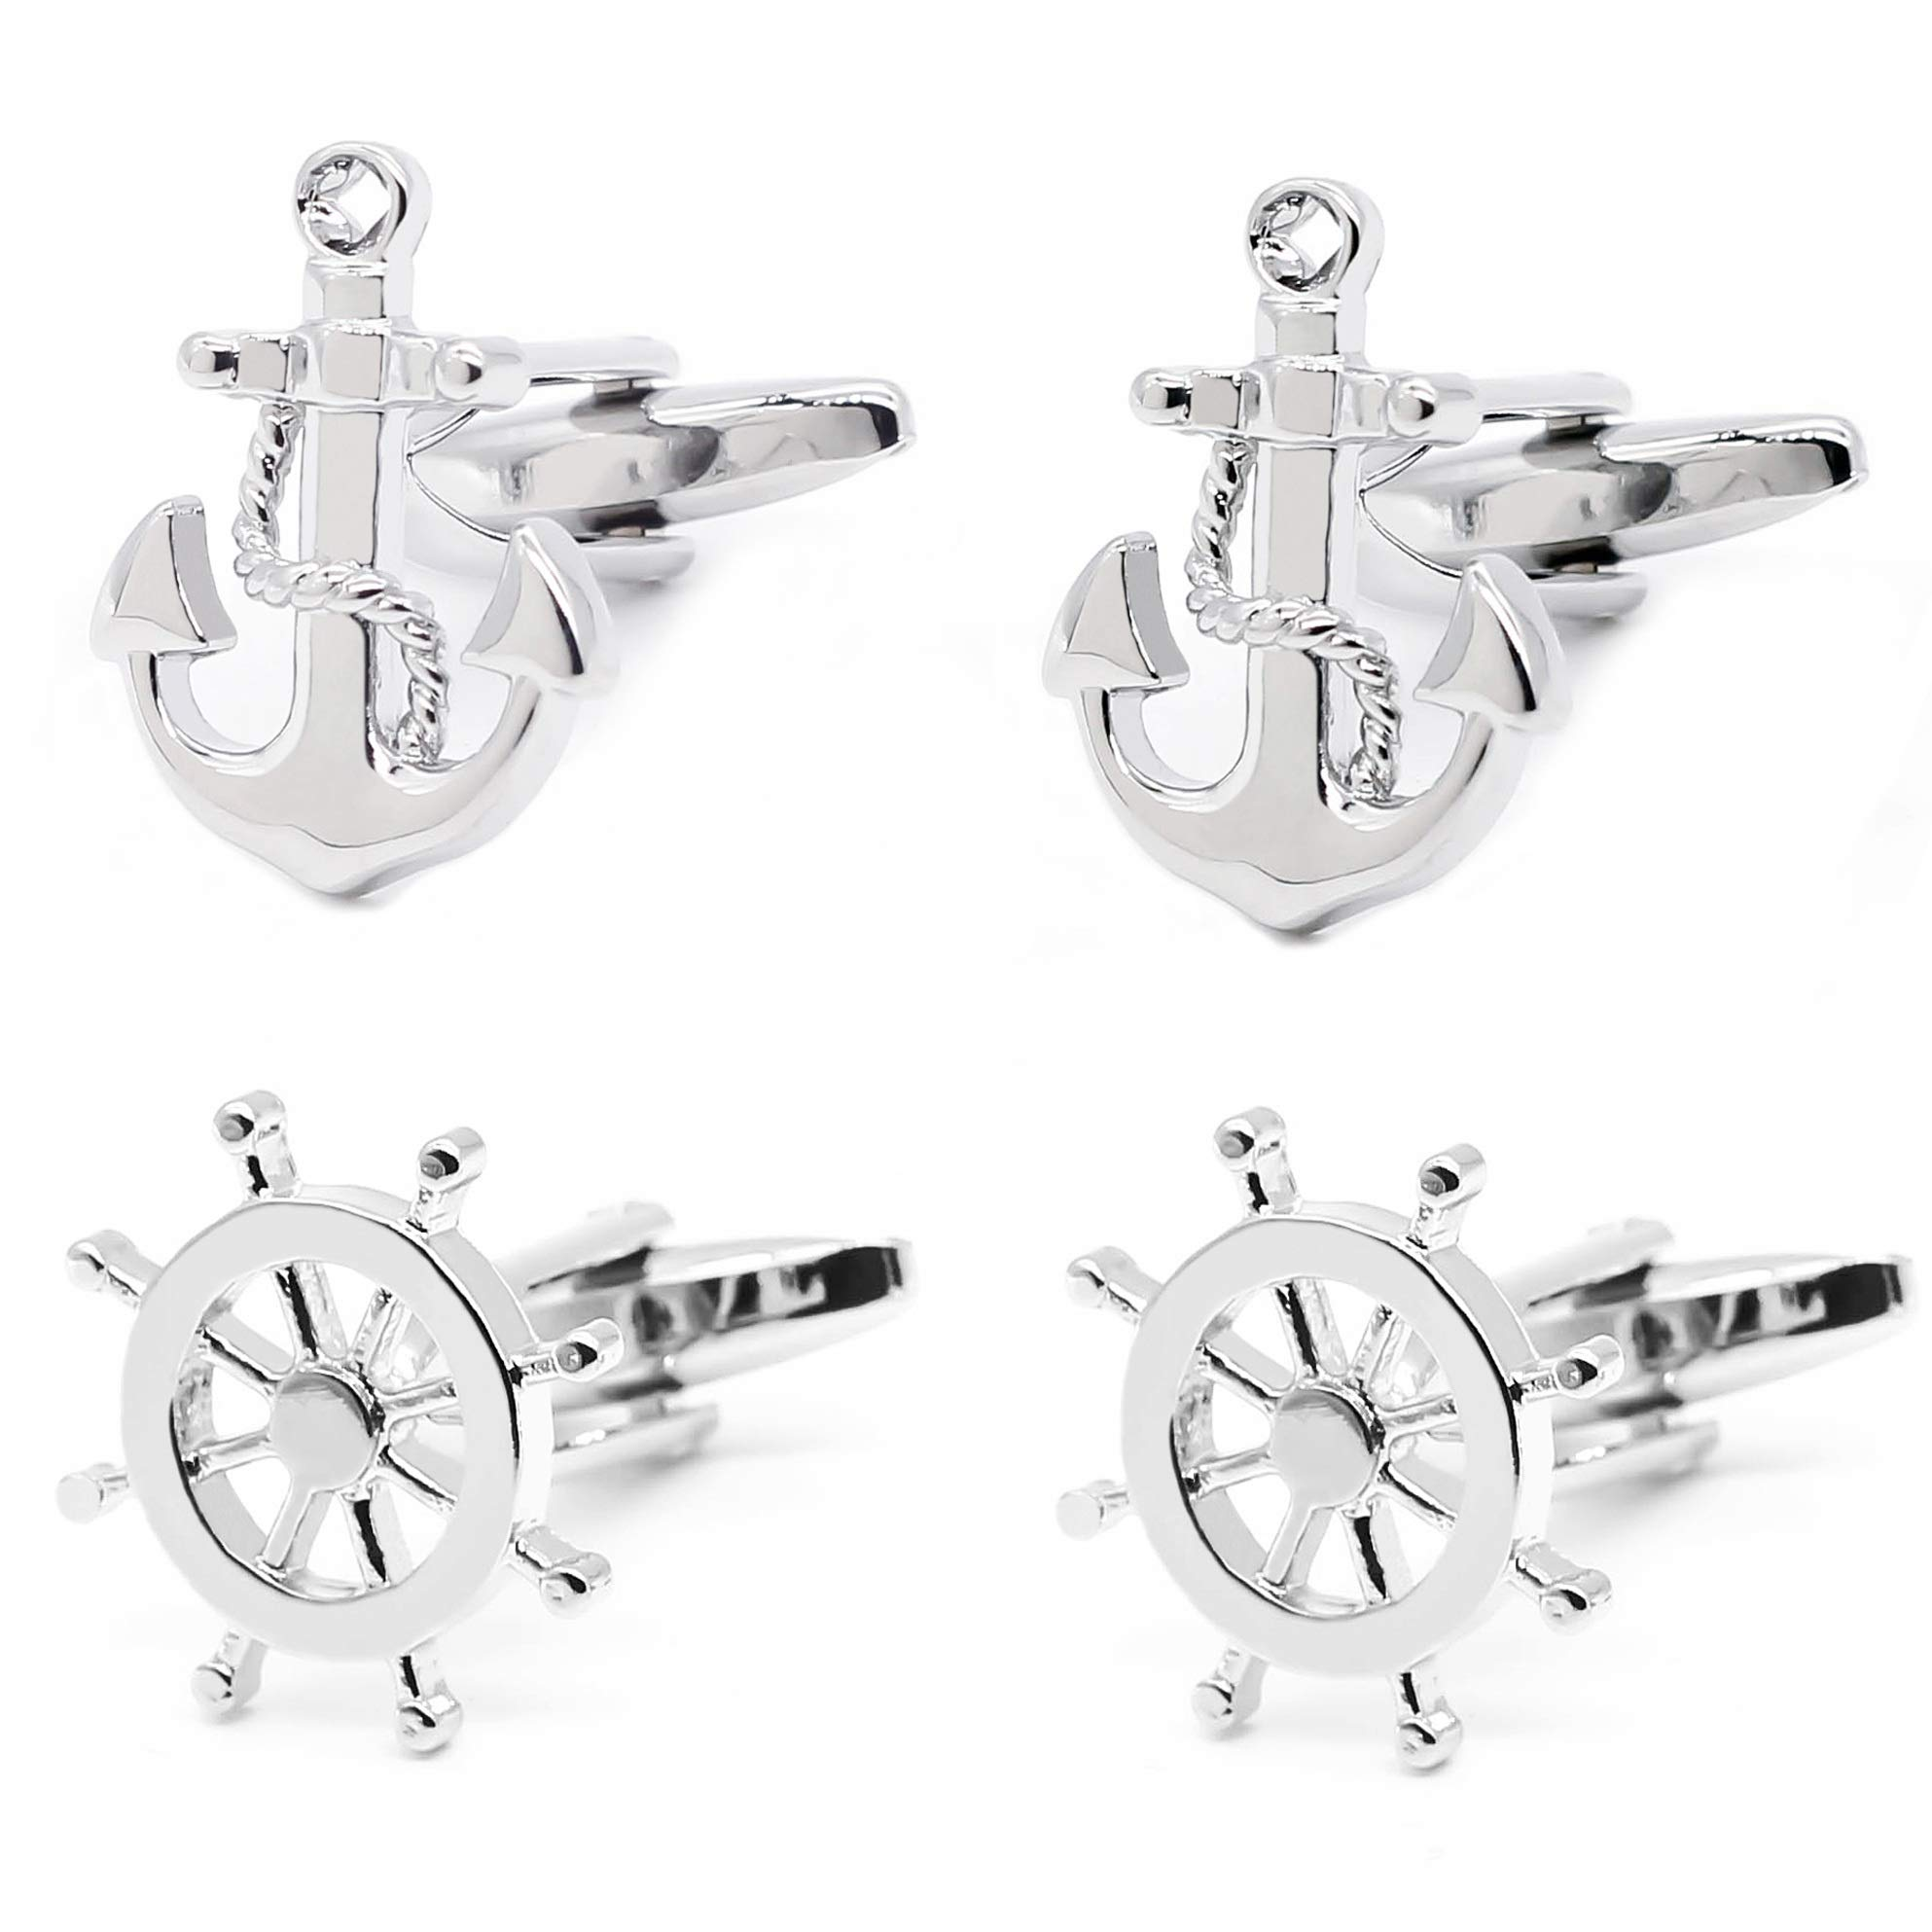 Gilind 2 Pairs Mens Cufflinks Nautical Anchor Ship Wheel Unique Wedding Business Shirt Cuff Links Mix Design Set Mens Jewelry Gift Box